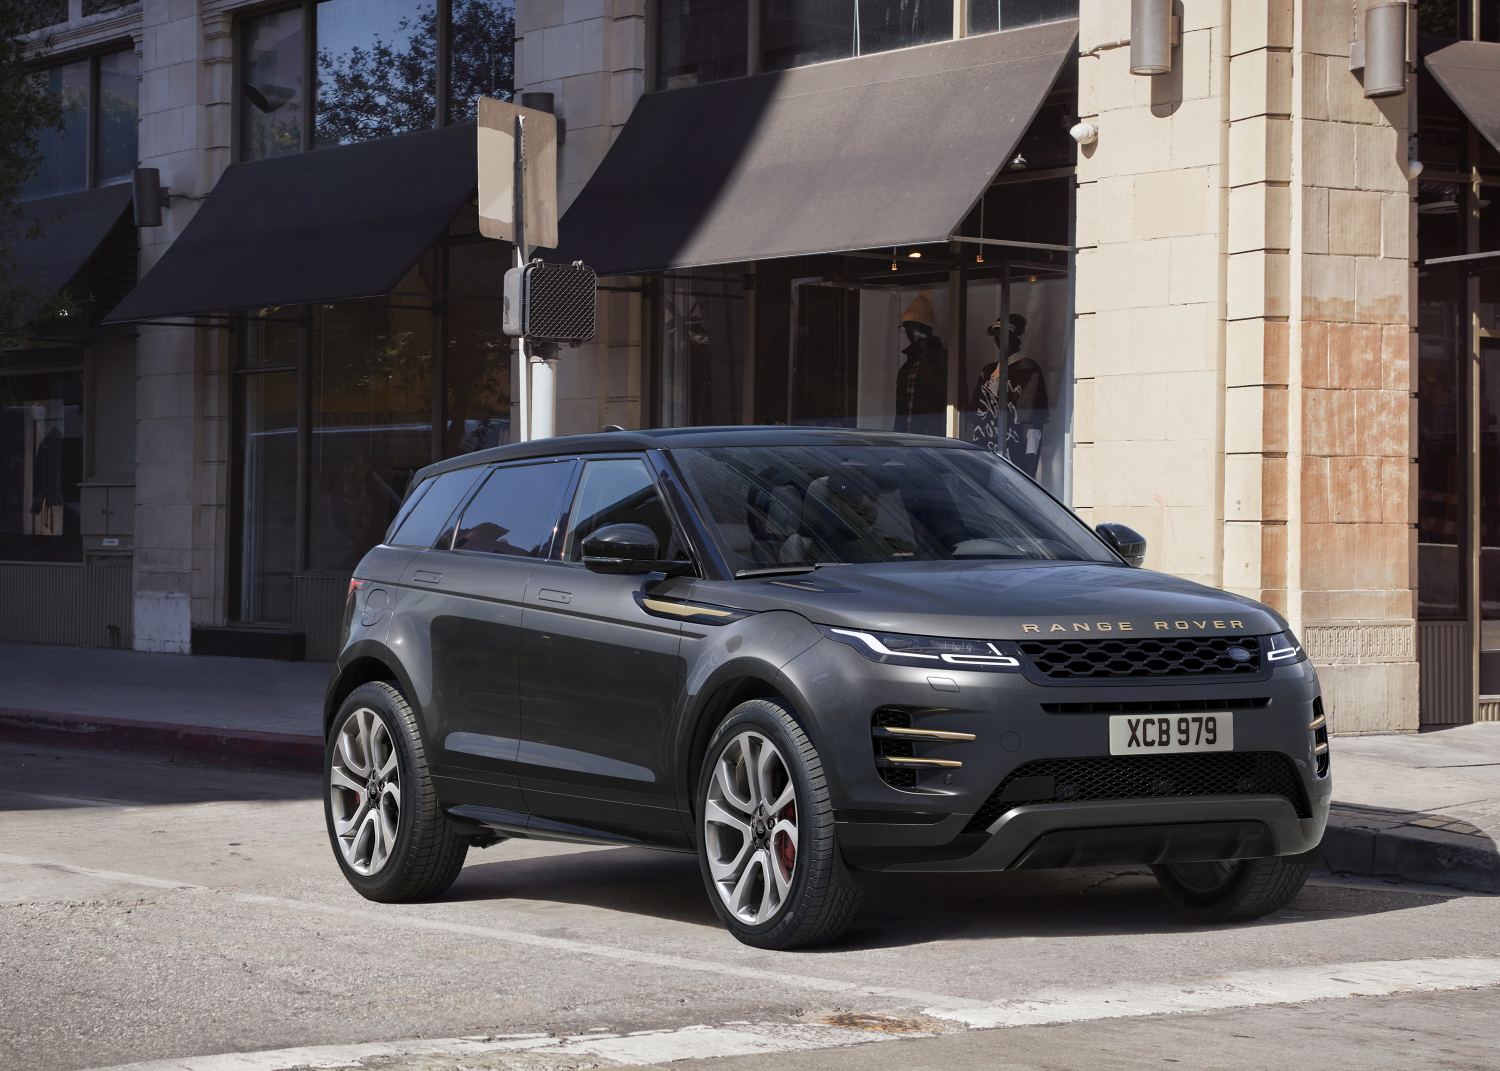 Refined Special Editions, New Infotainment and Electrified Engines now Available for Evoque and Discovery Sport - Image 4